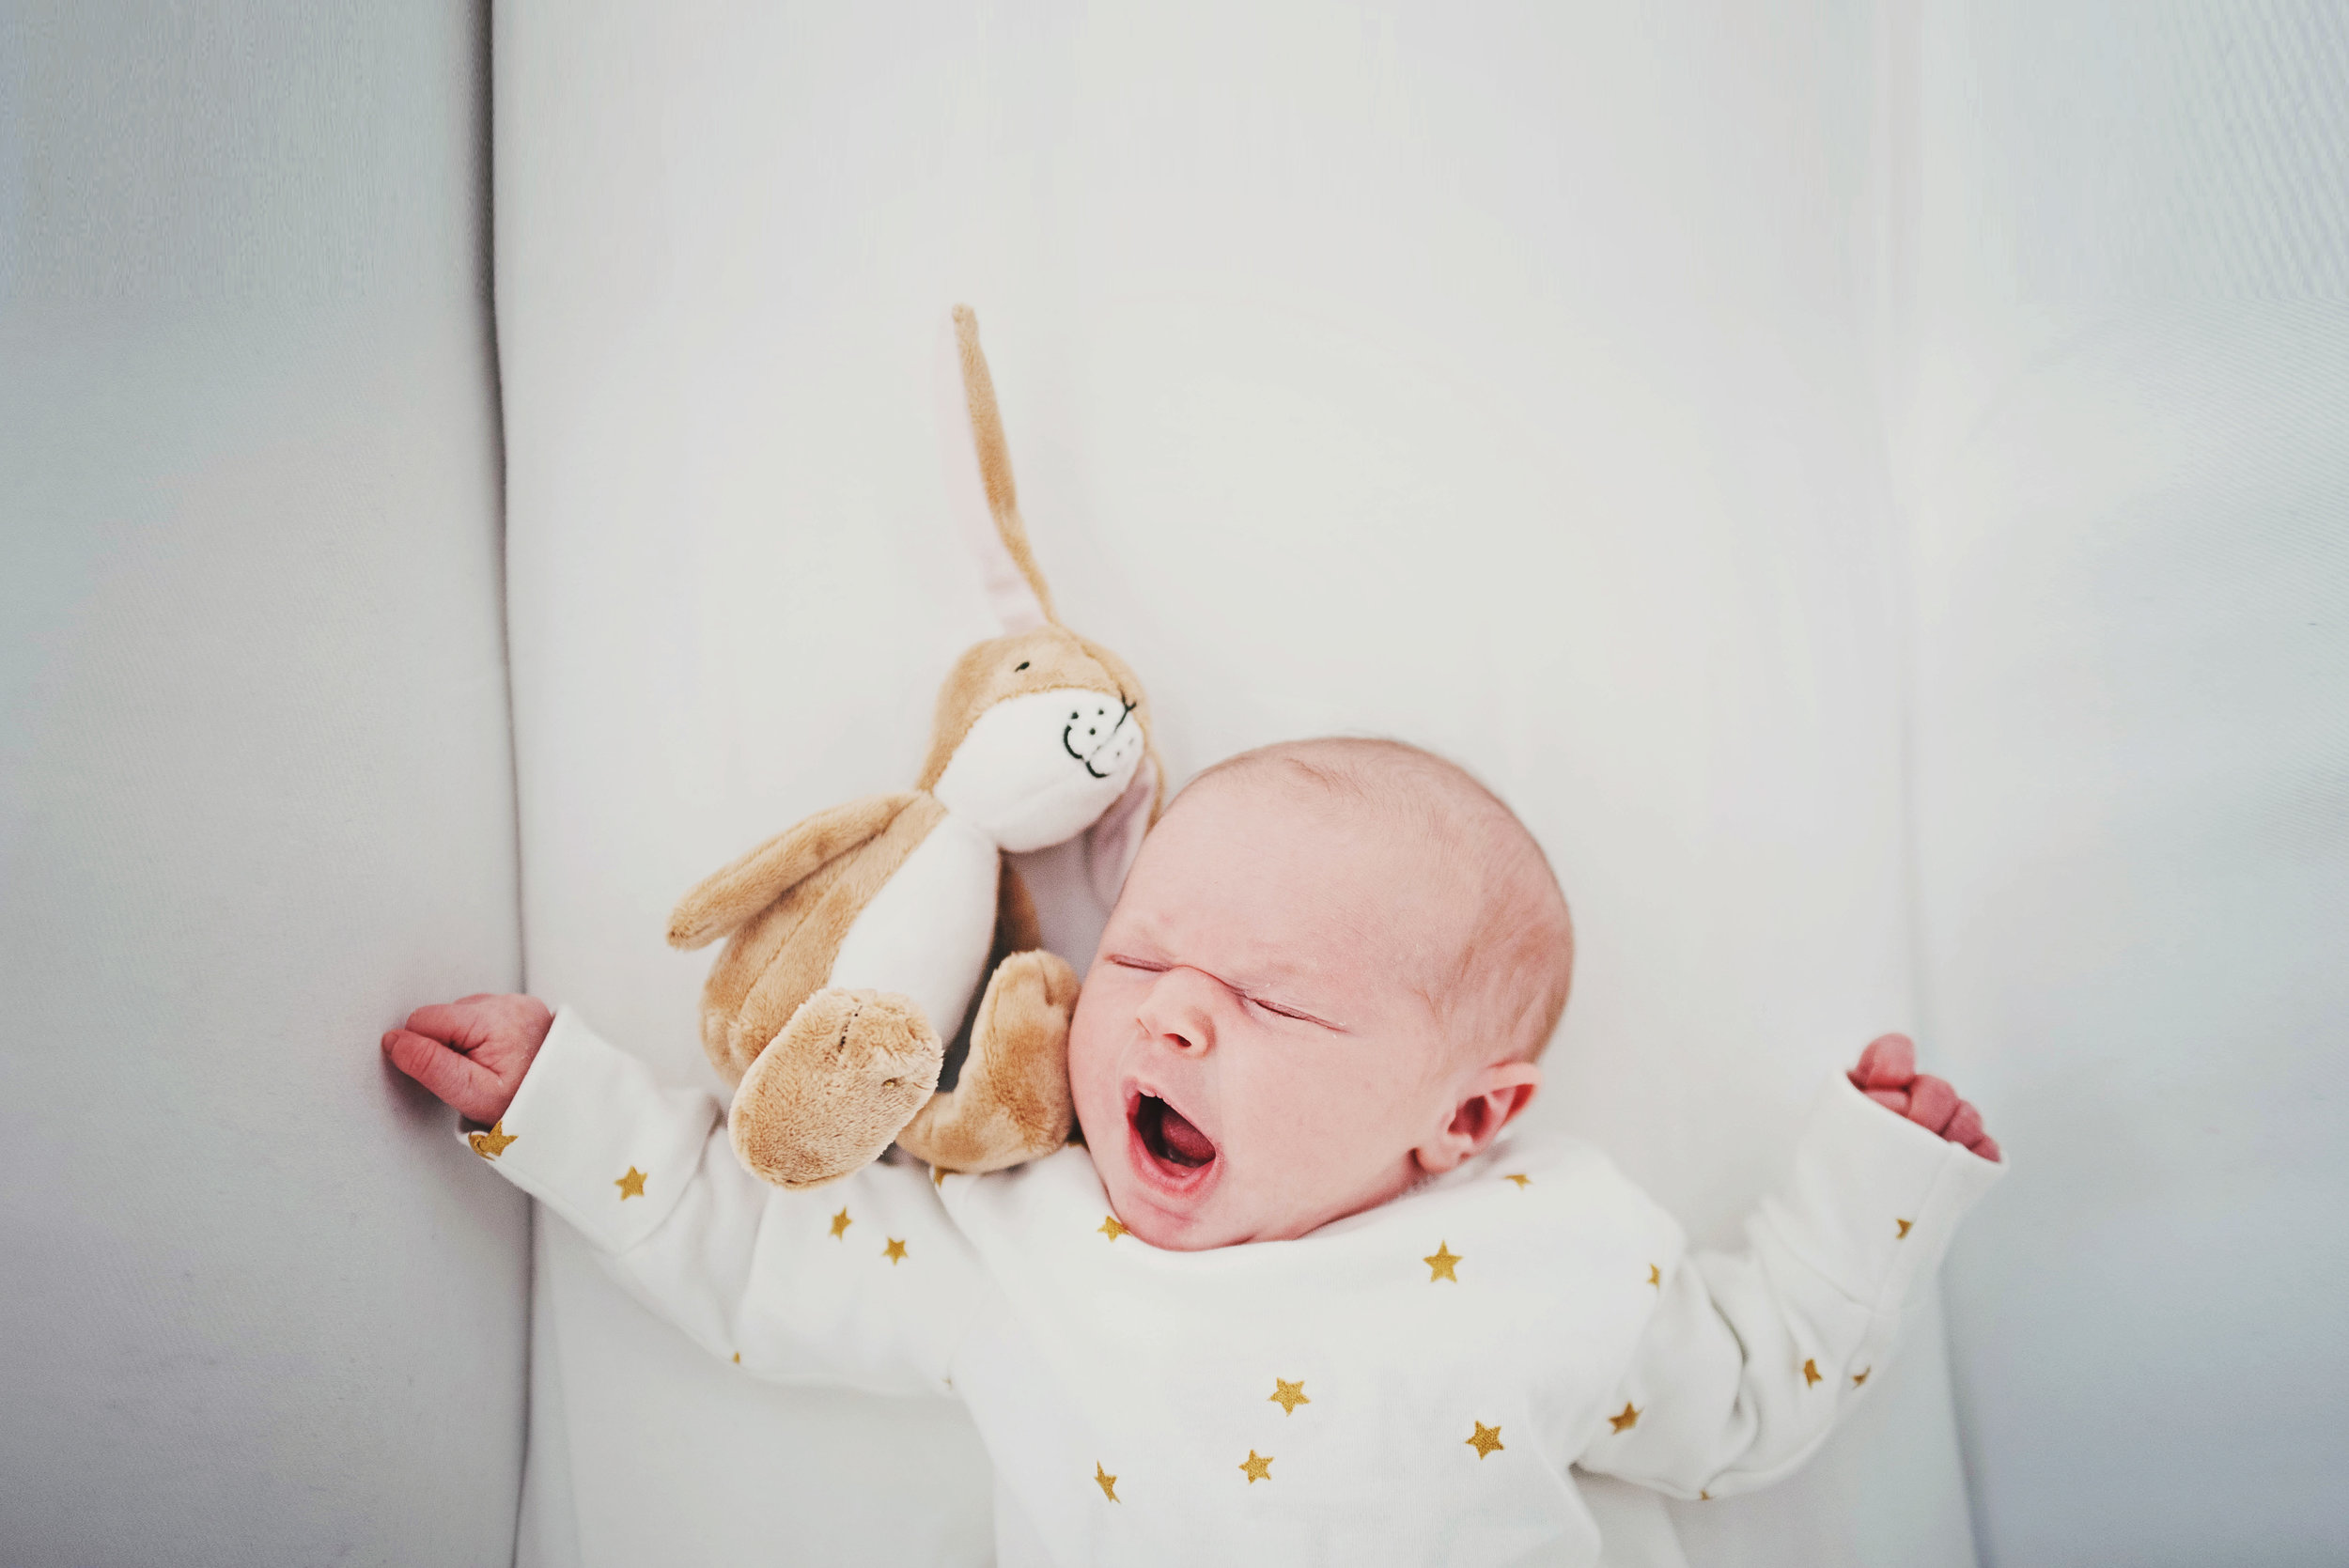 yawning baby girl in crib with toy essex uk documentary childhood family lifestyle photographer